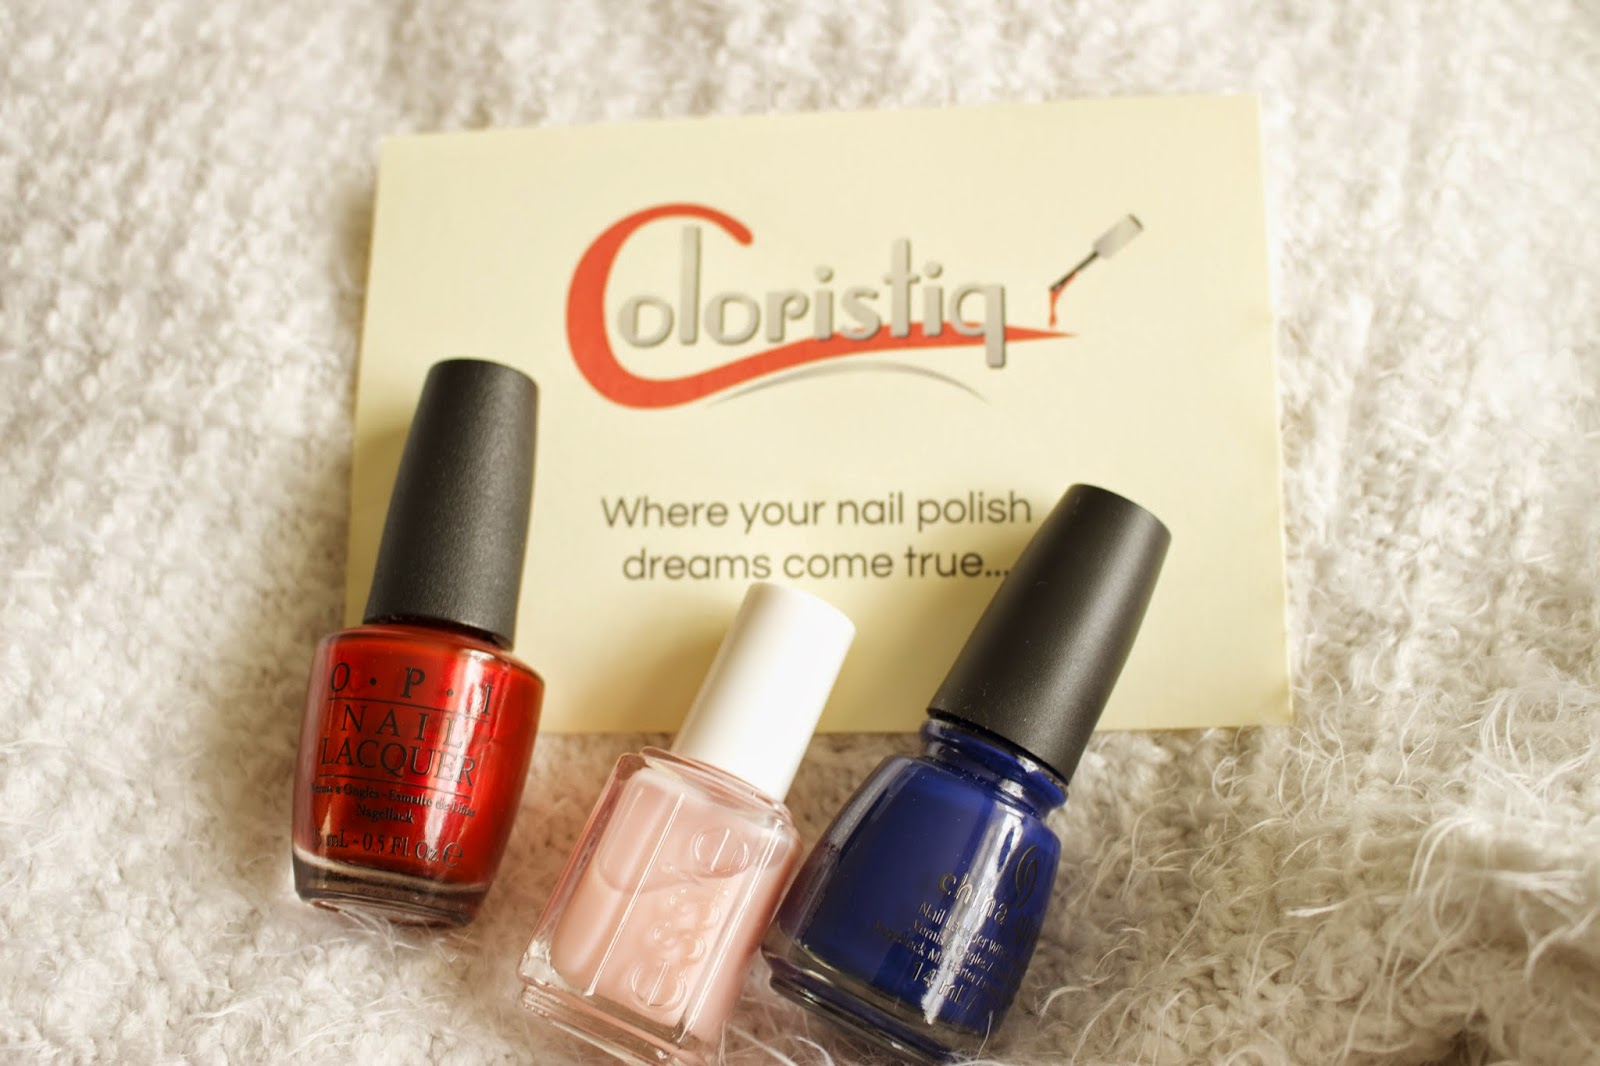 Simple Synth Coloristiq Nail Polish Box Review Rental